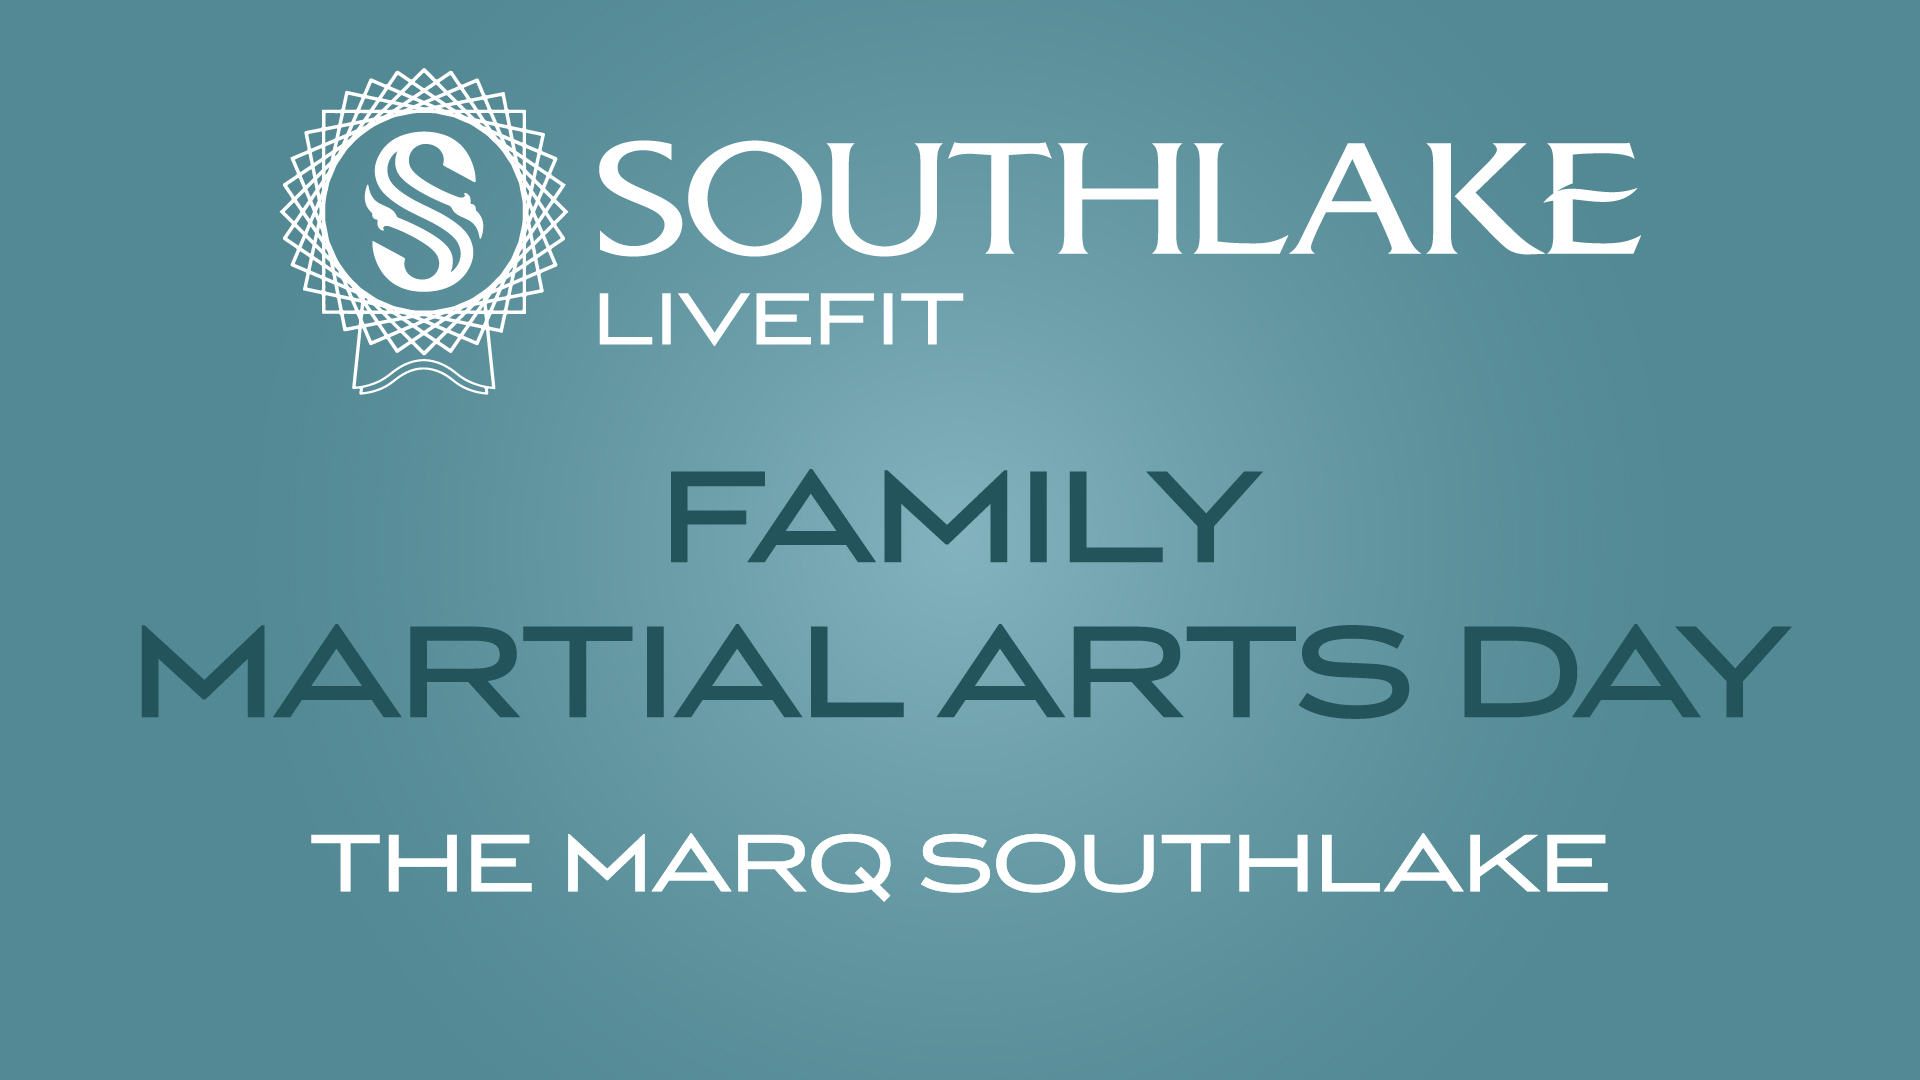 Livefit 20web 20banner 20family 20martial 20arts 20day 100